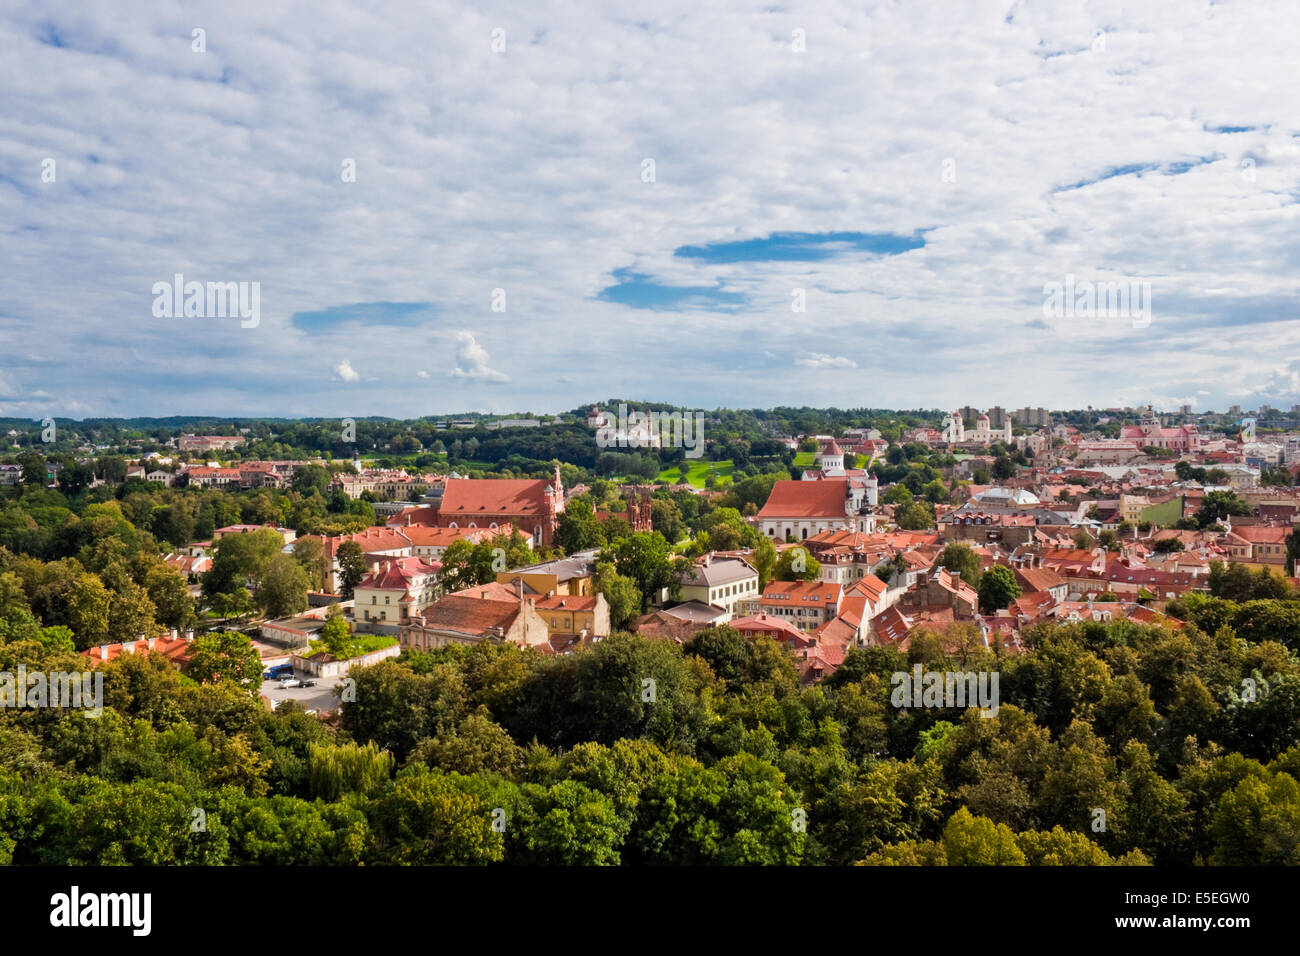 View of the old Vilnius from the Gediminas hill - Stock Image